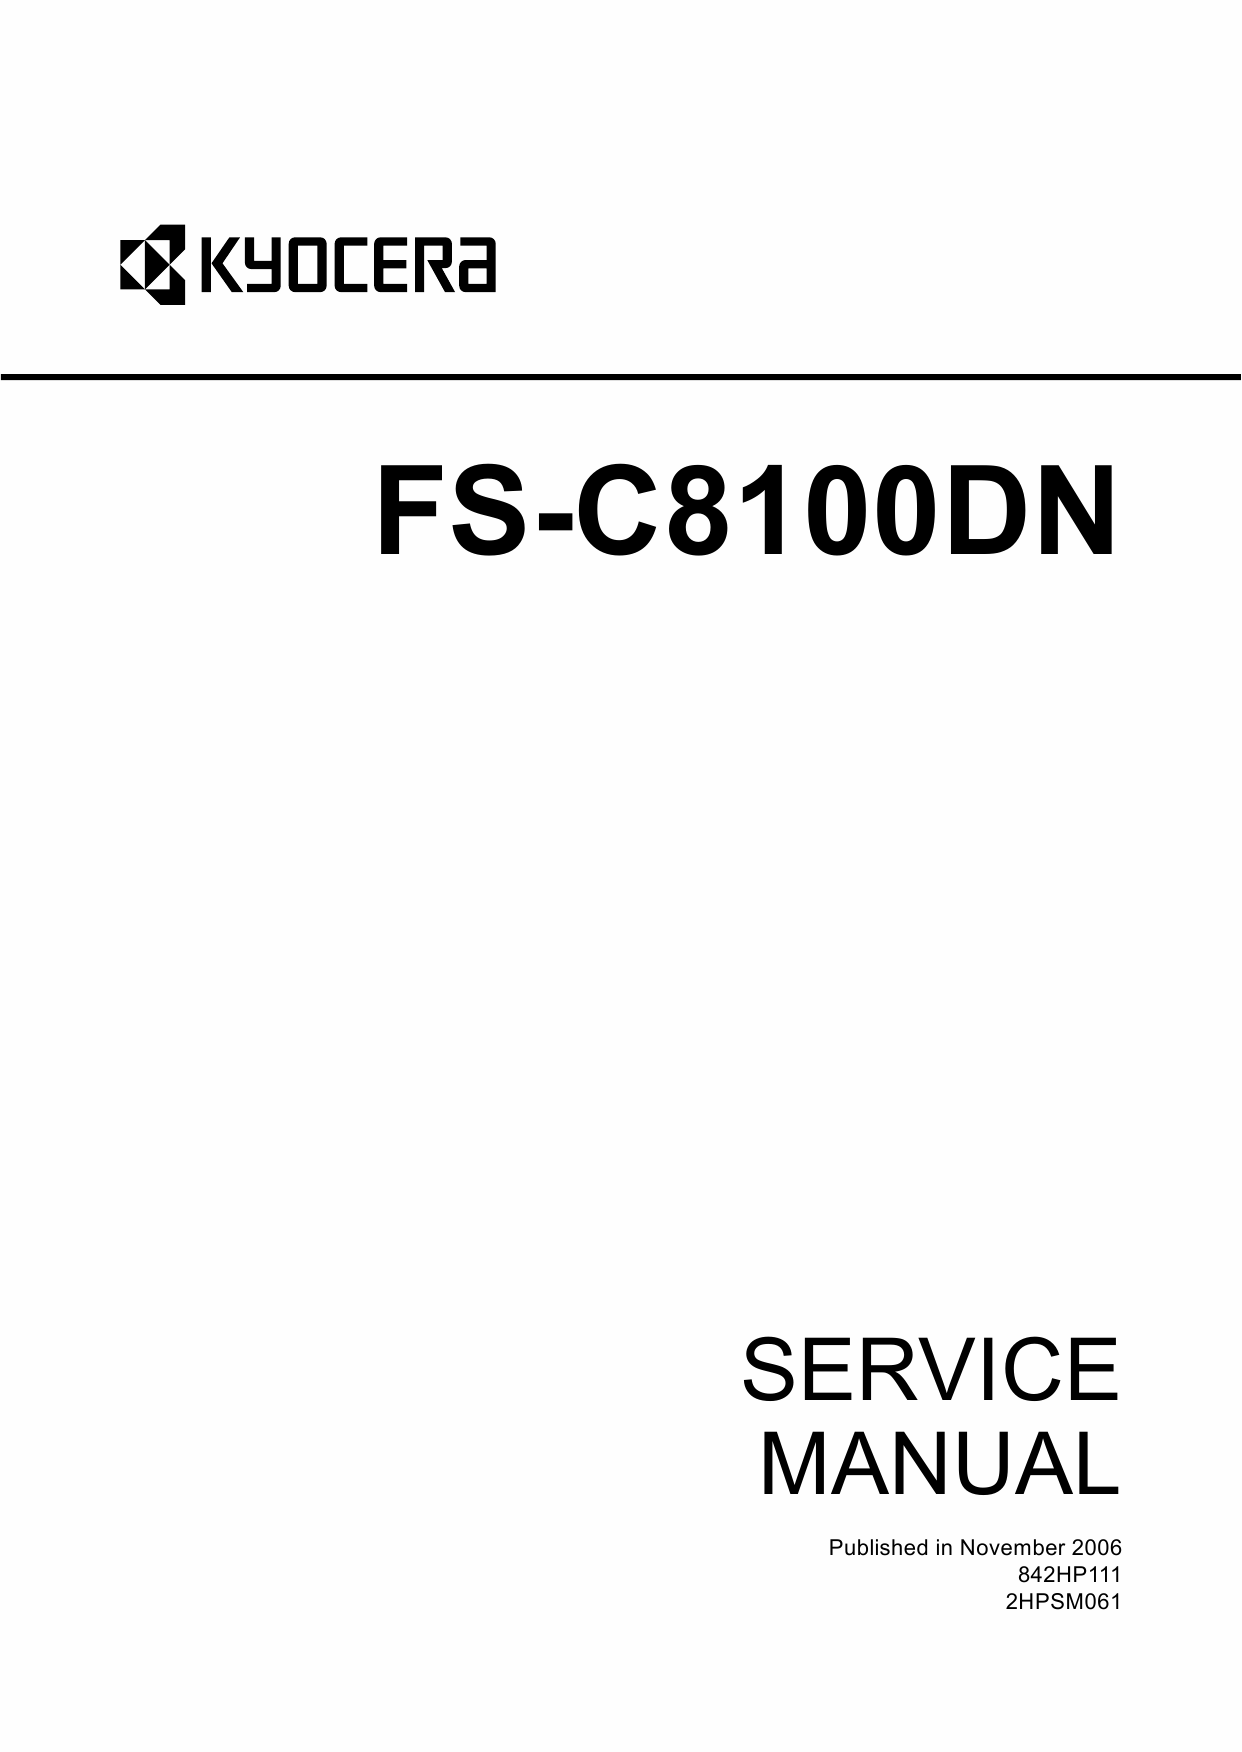 KYOCERA ColorLaserPrinter FS-C8100DN Parts and Service Manual-1